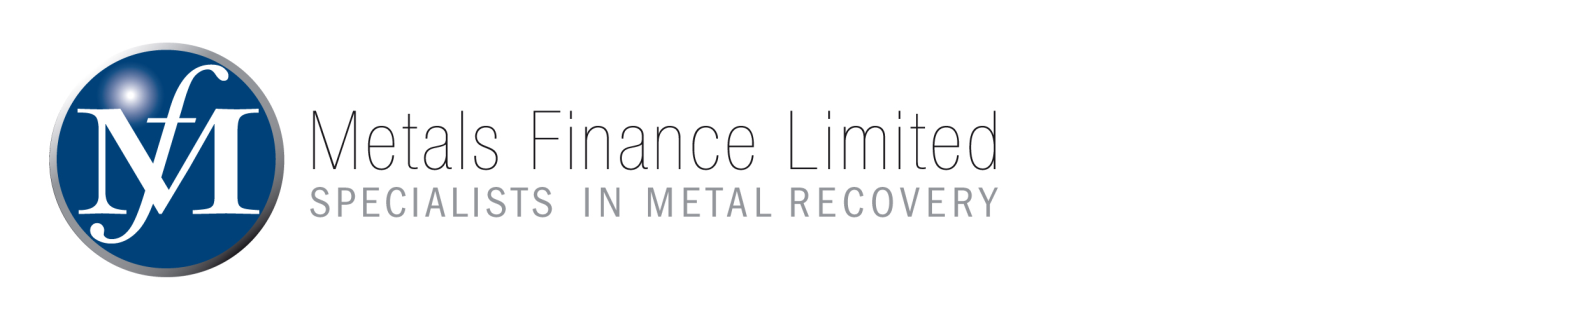 QUARTERLY REPORT FOR THE PERIOD TO 31 MAY 2012 Metals Finance Limited (ASX: MFC) is pleased to provide its Quarterly Activities Report for the three month period ending 31 May 2012.